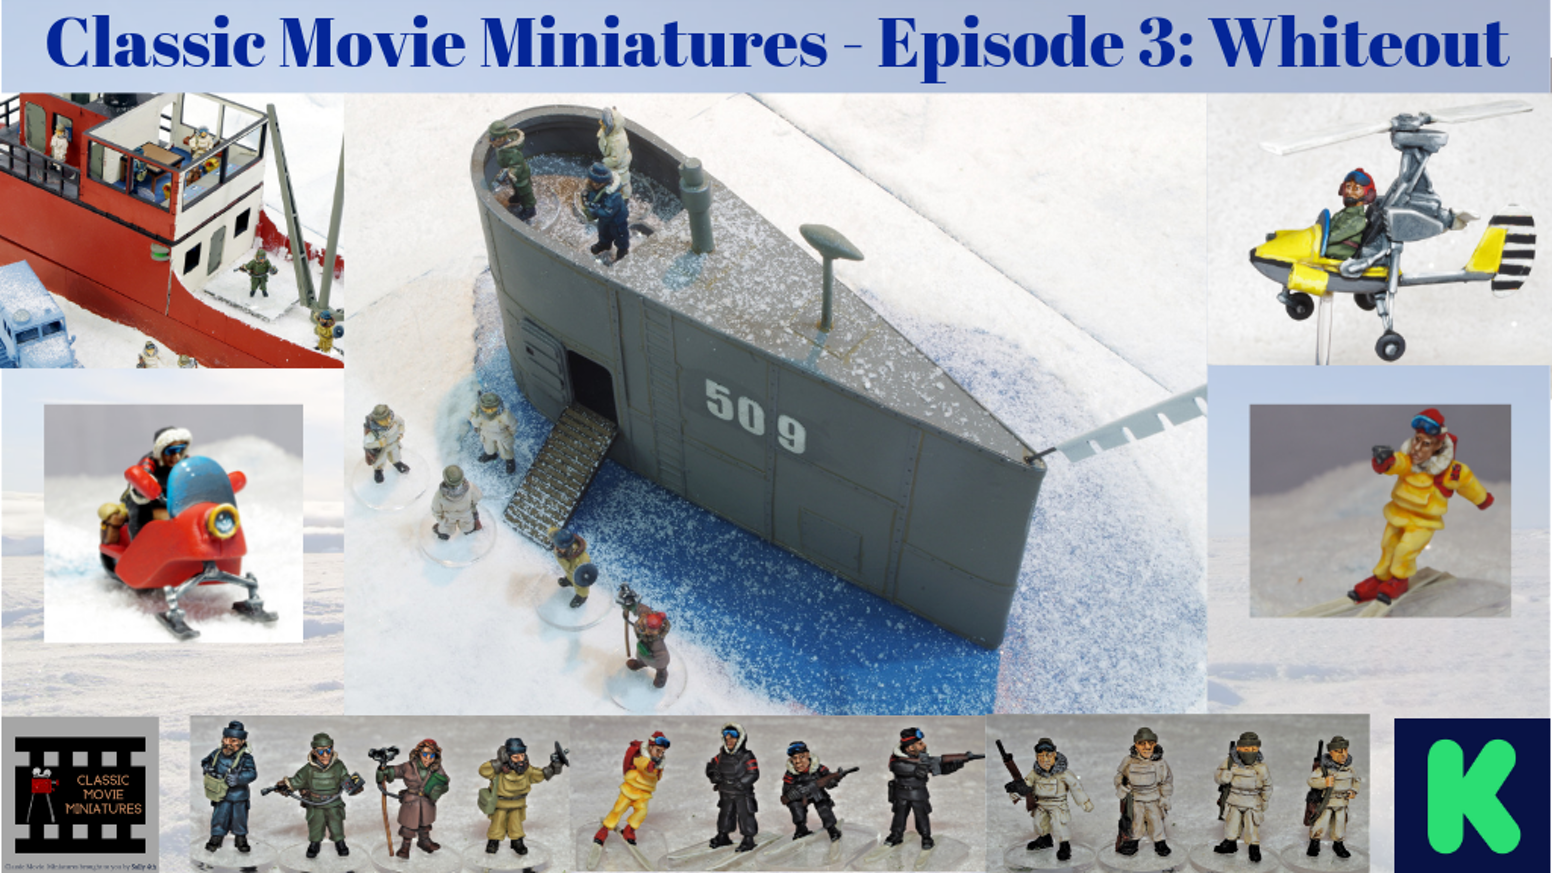 28mm pulp / spy-fi miniatures inspired by classic movies set in cold places.